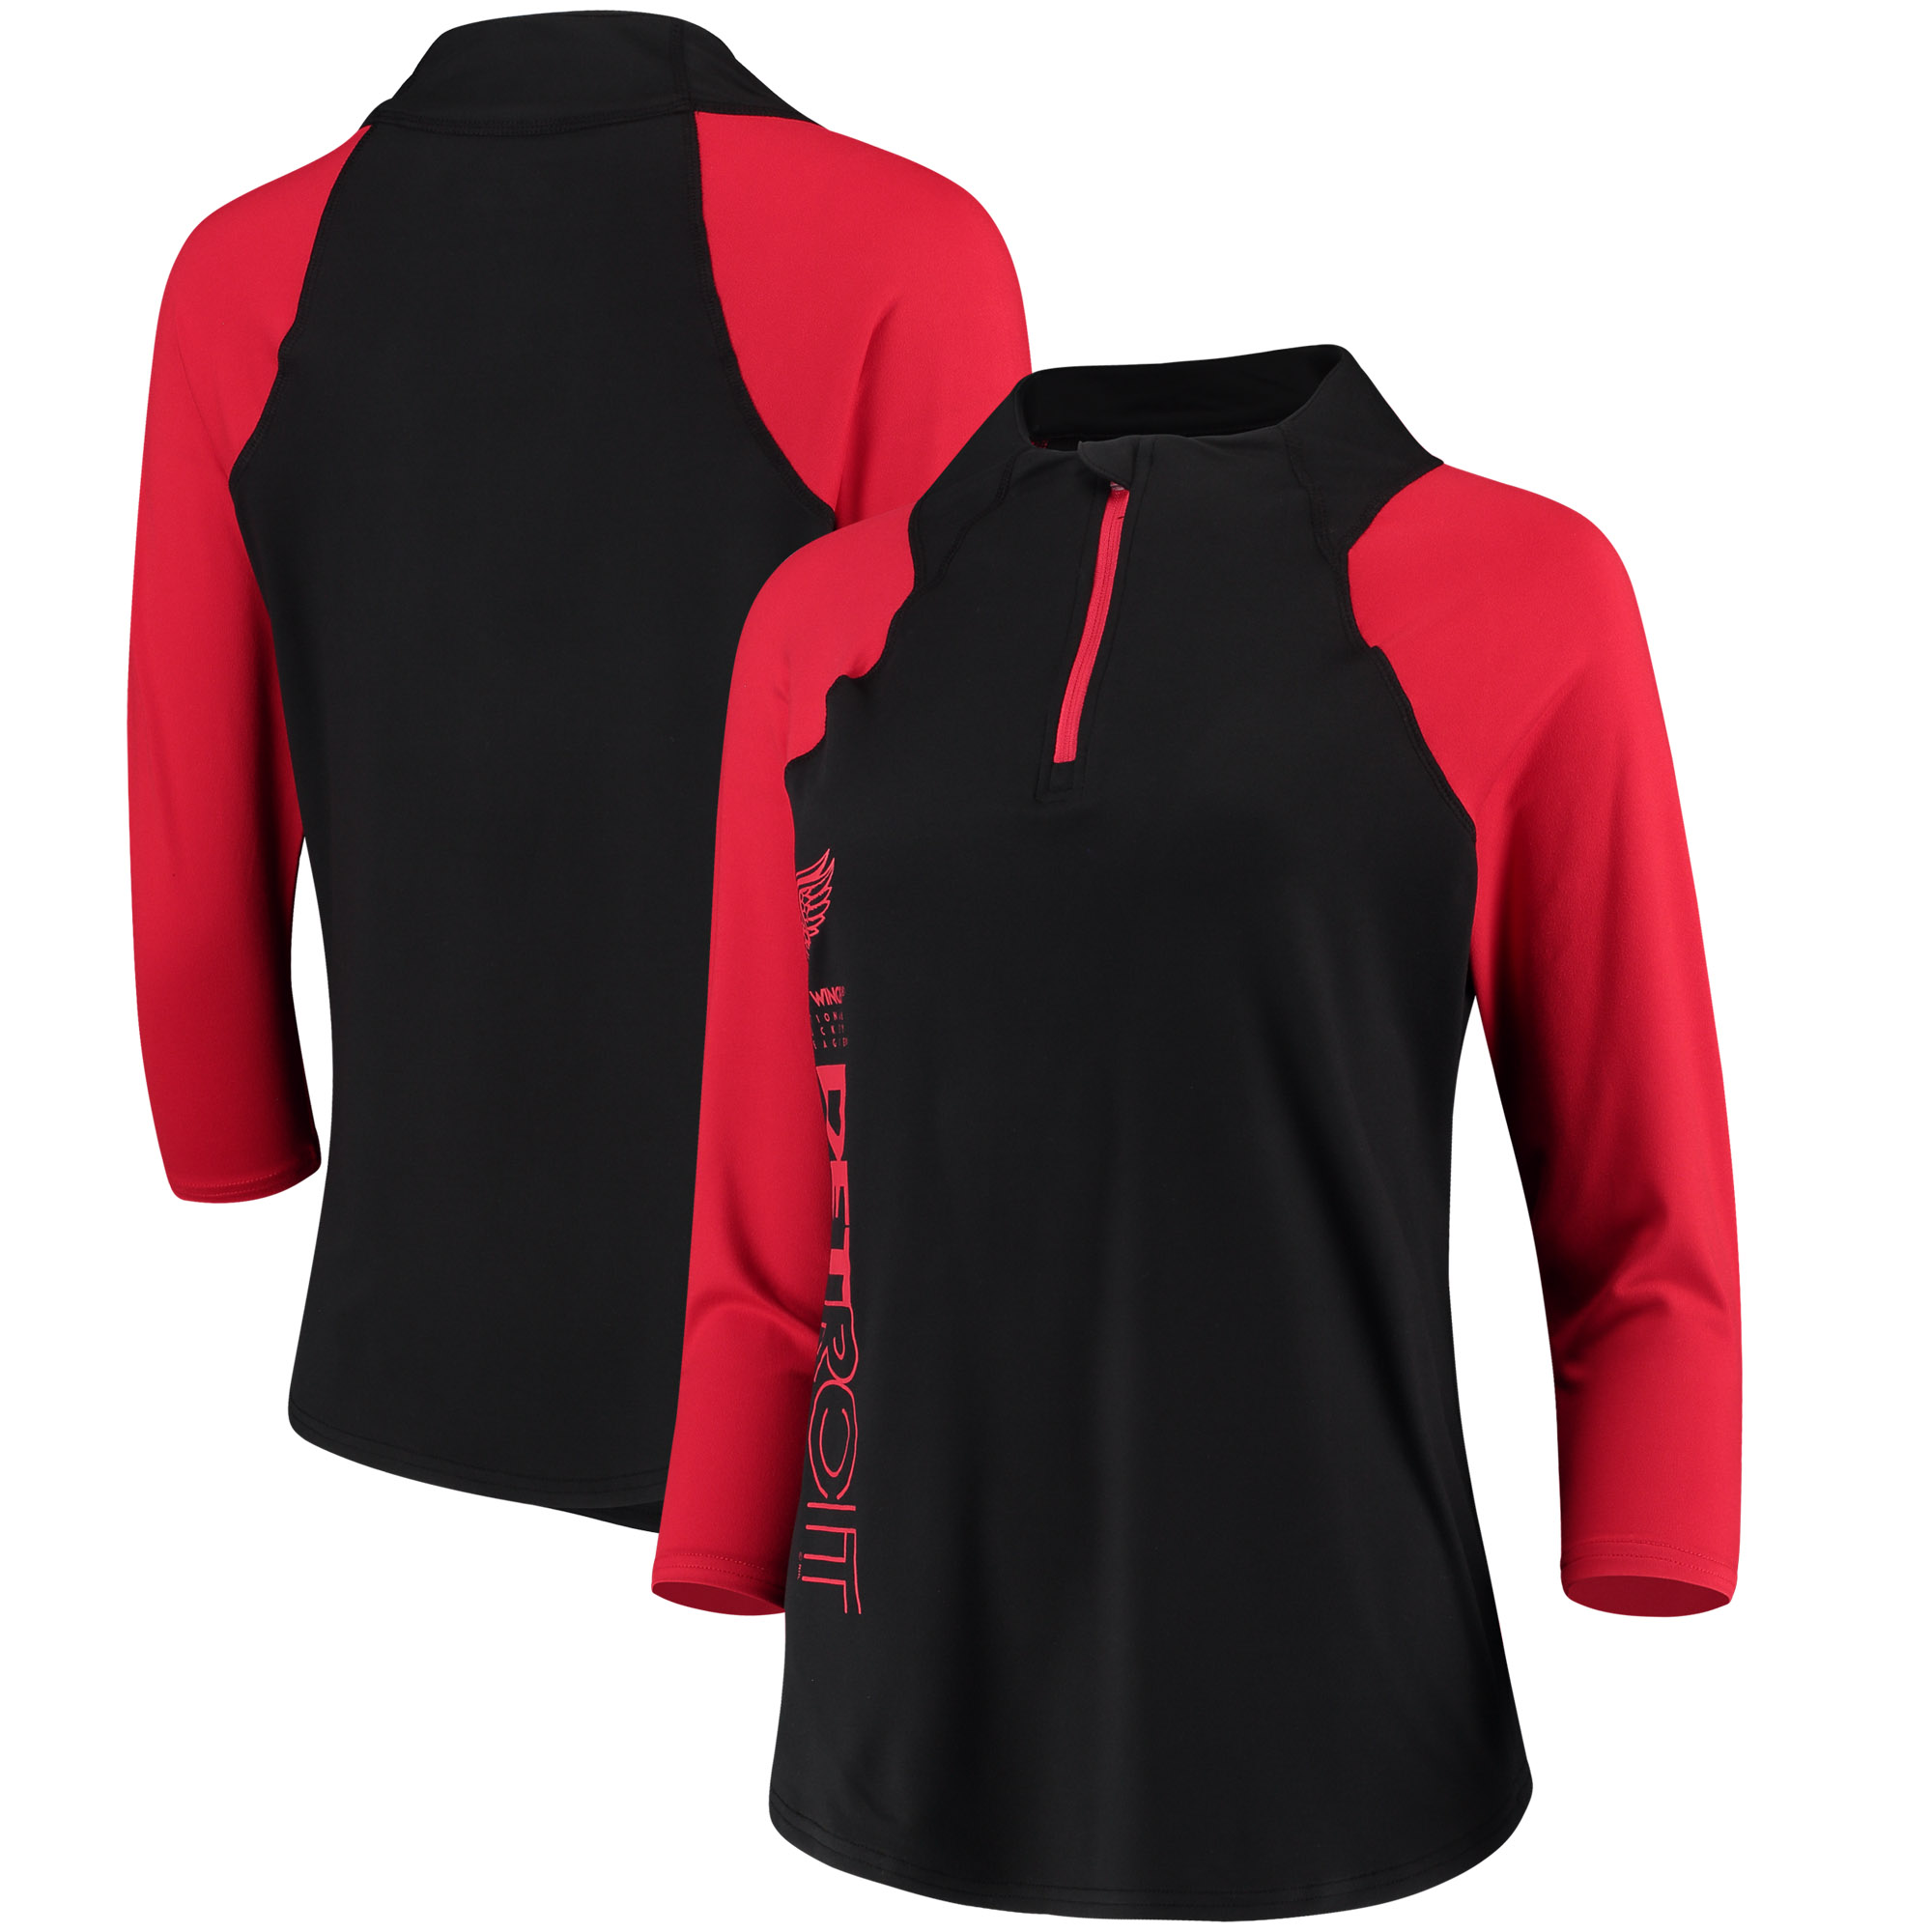 Detroit Red Wings G-III 4Her by Carl Banks Women's Zip It Up Quarter-Zip Long Sleeve T-Shirt - Black/Red